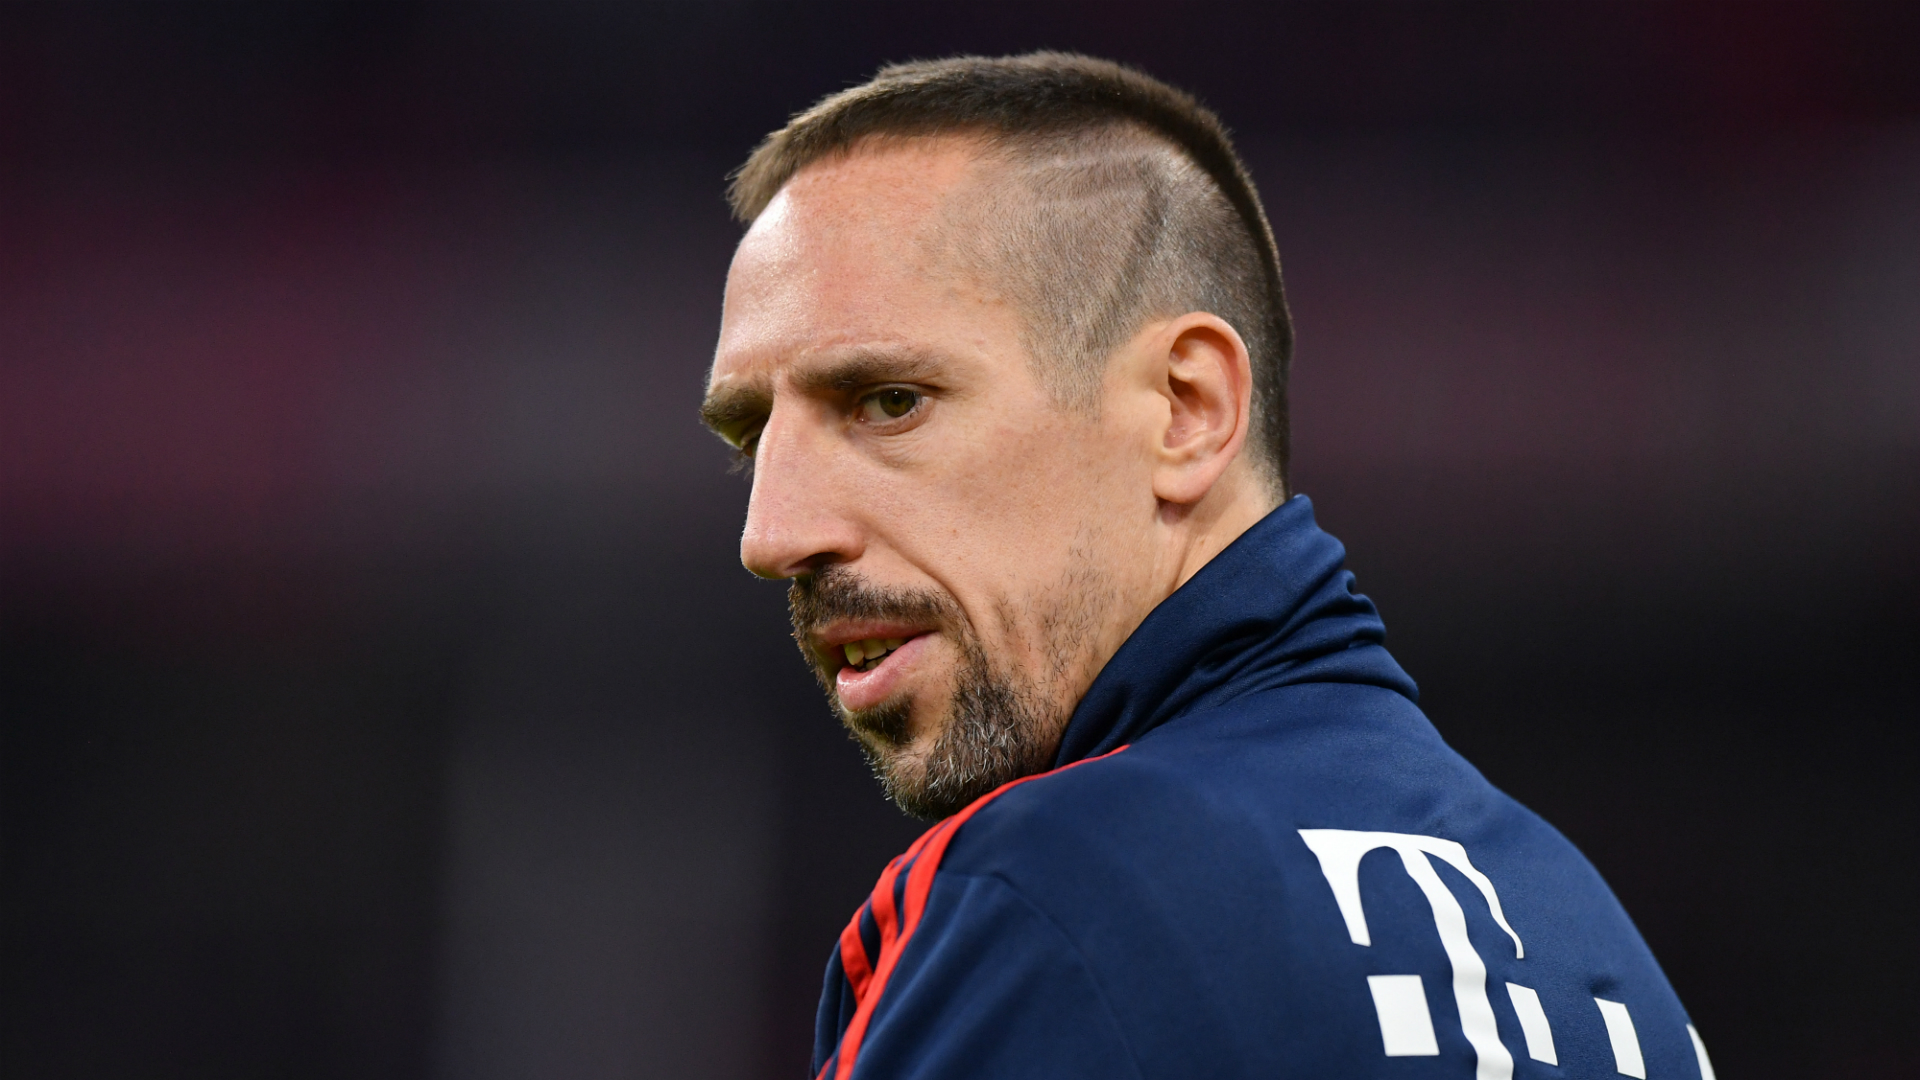 Ribery welcomed by thousands of Fiorentina fans